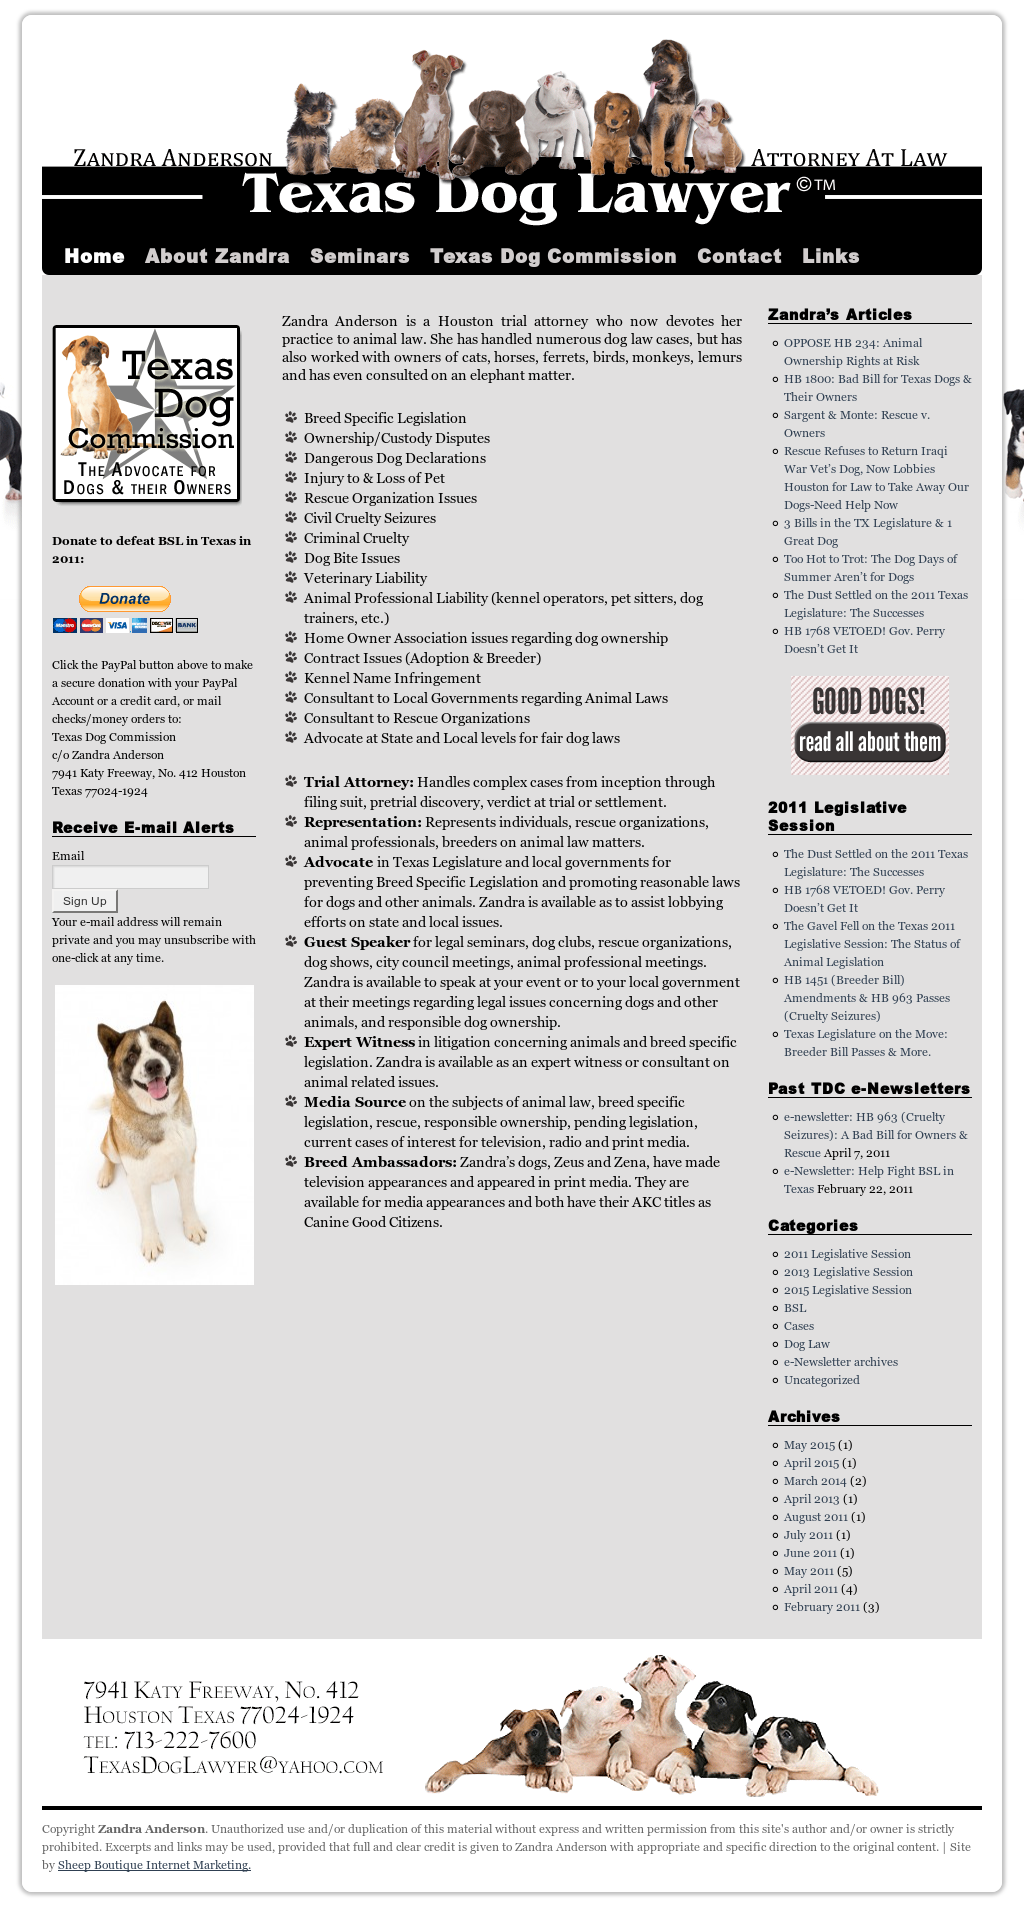 Texas Dog Lawyer Competitors, Revenue and Employees - Owler